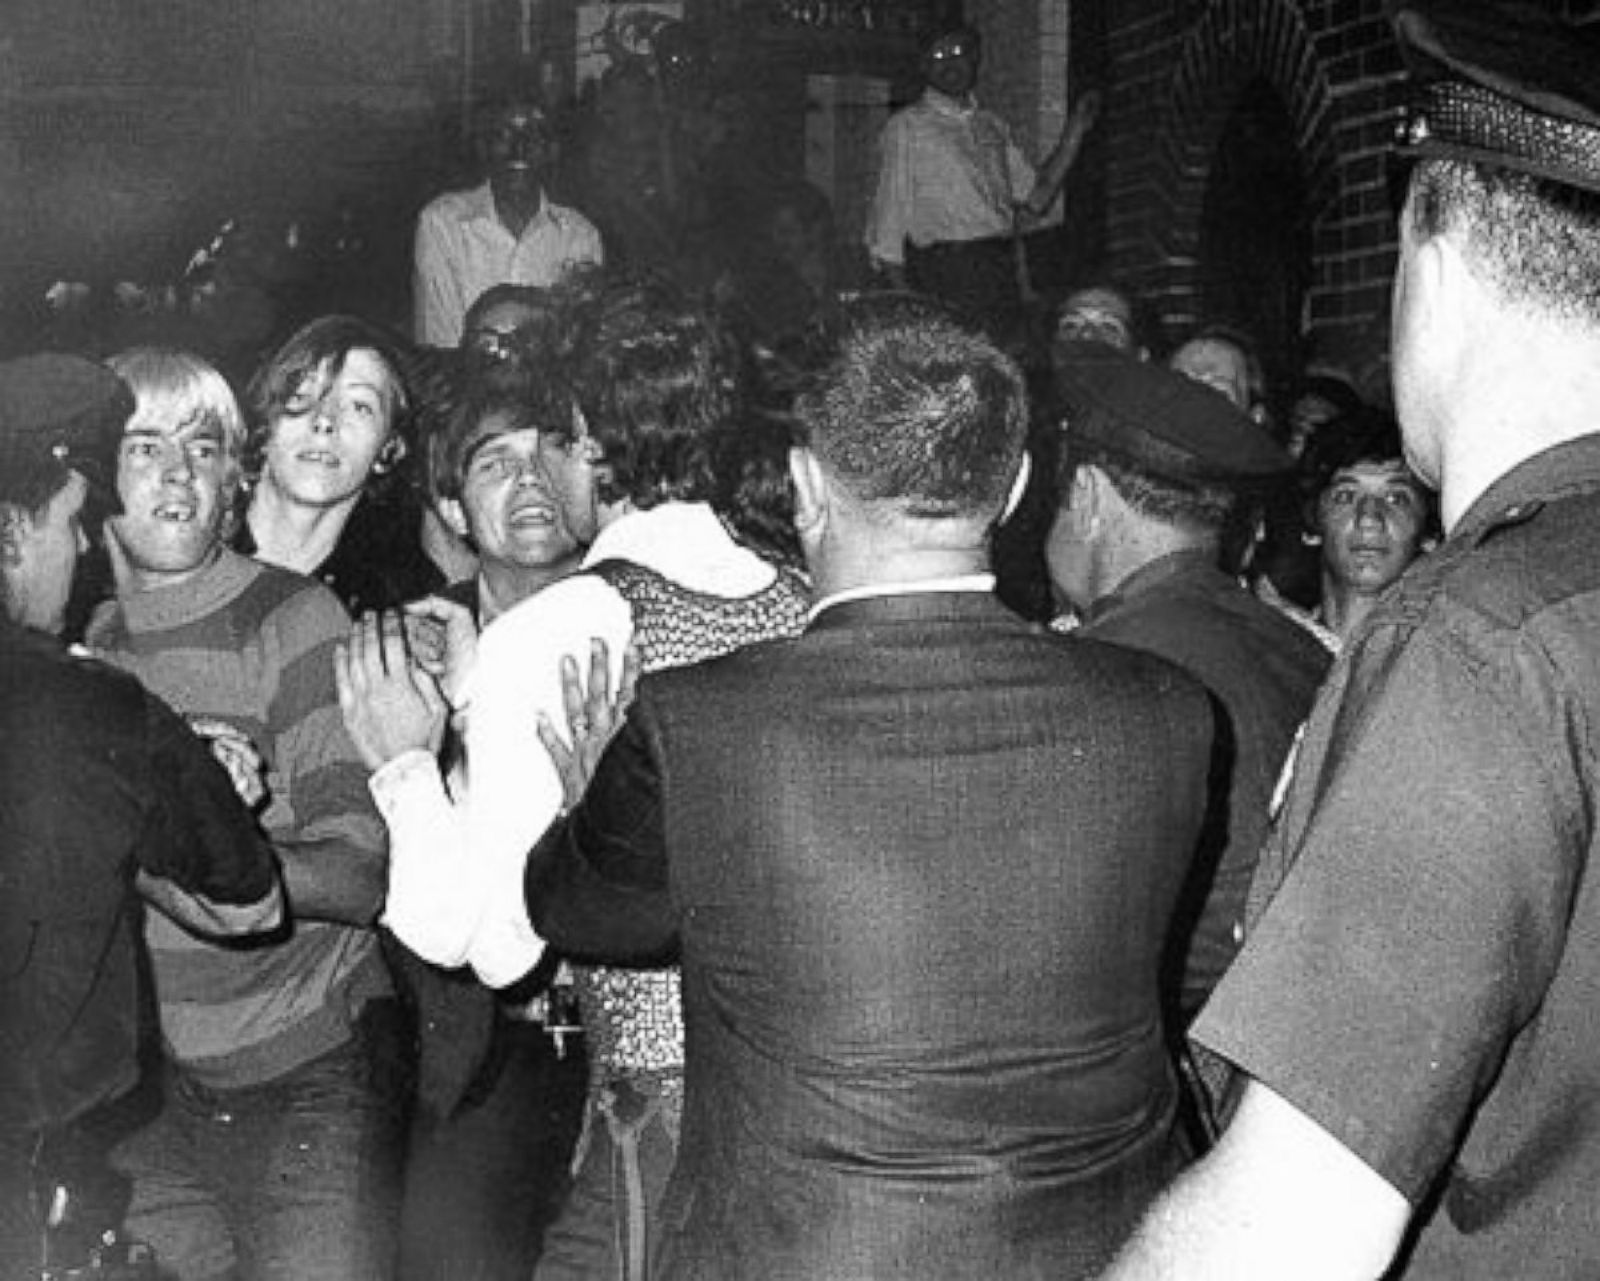 stonewall inn, stonewall inn riots, lgbtq rights